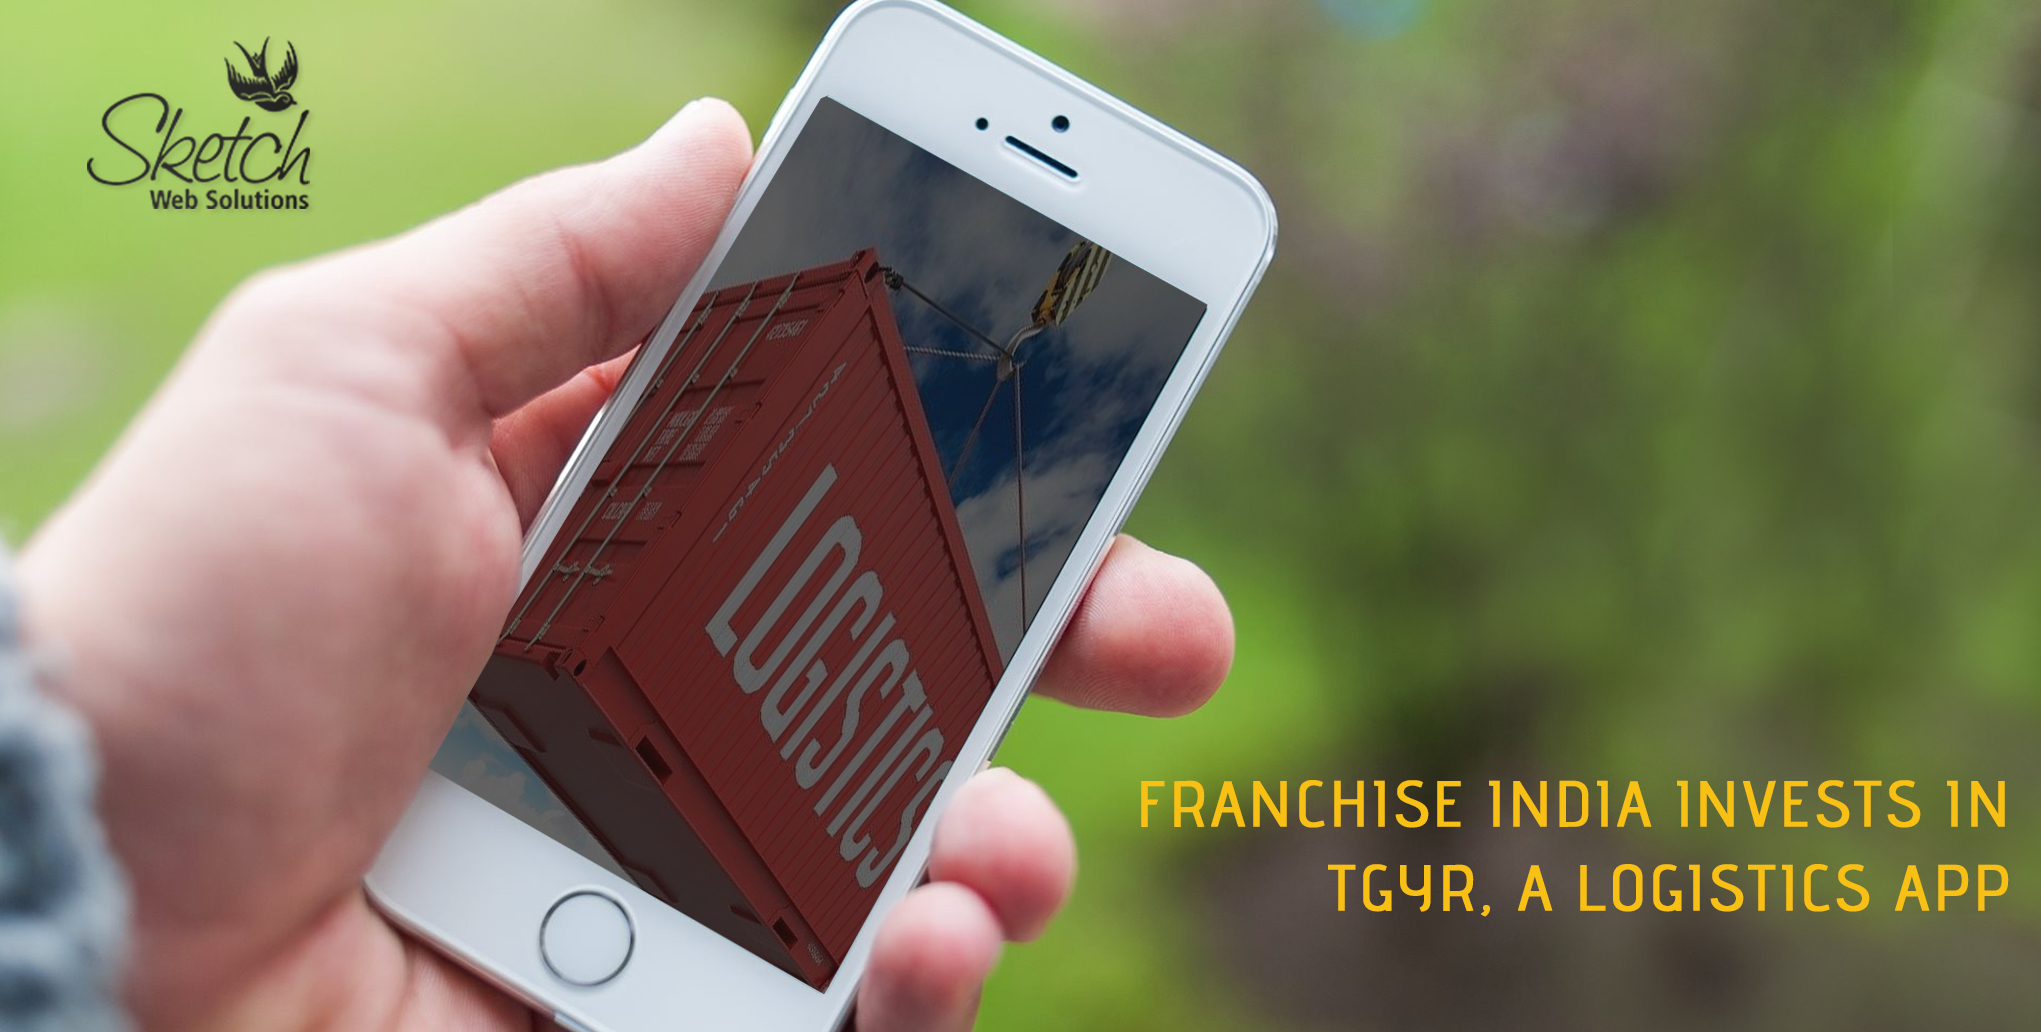 Franchise-India-invests-in-TGYR,-a-logistics-app